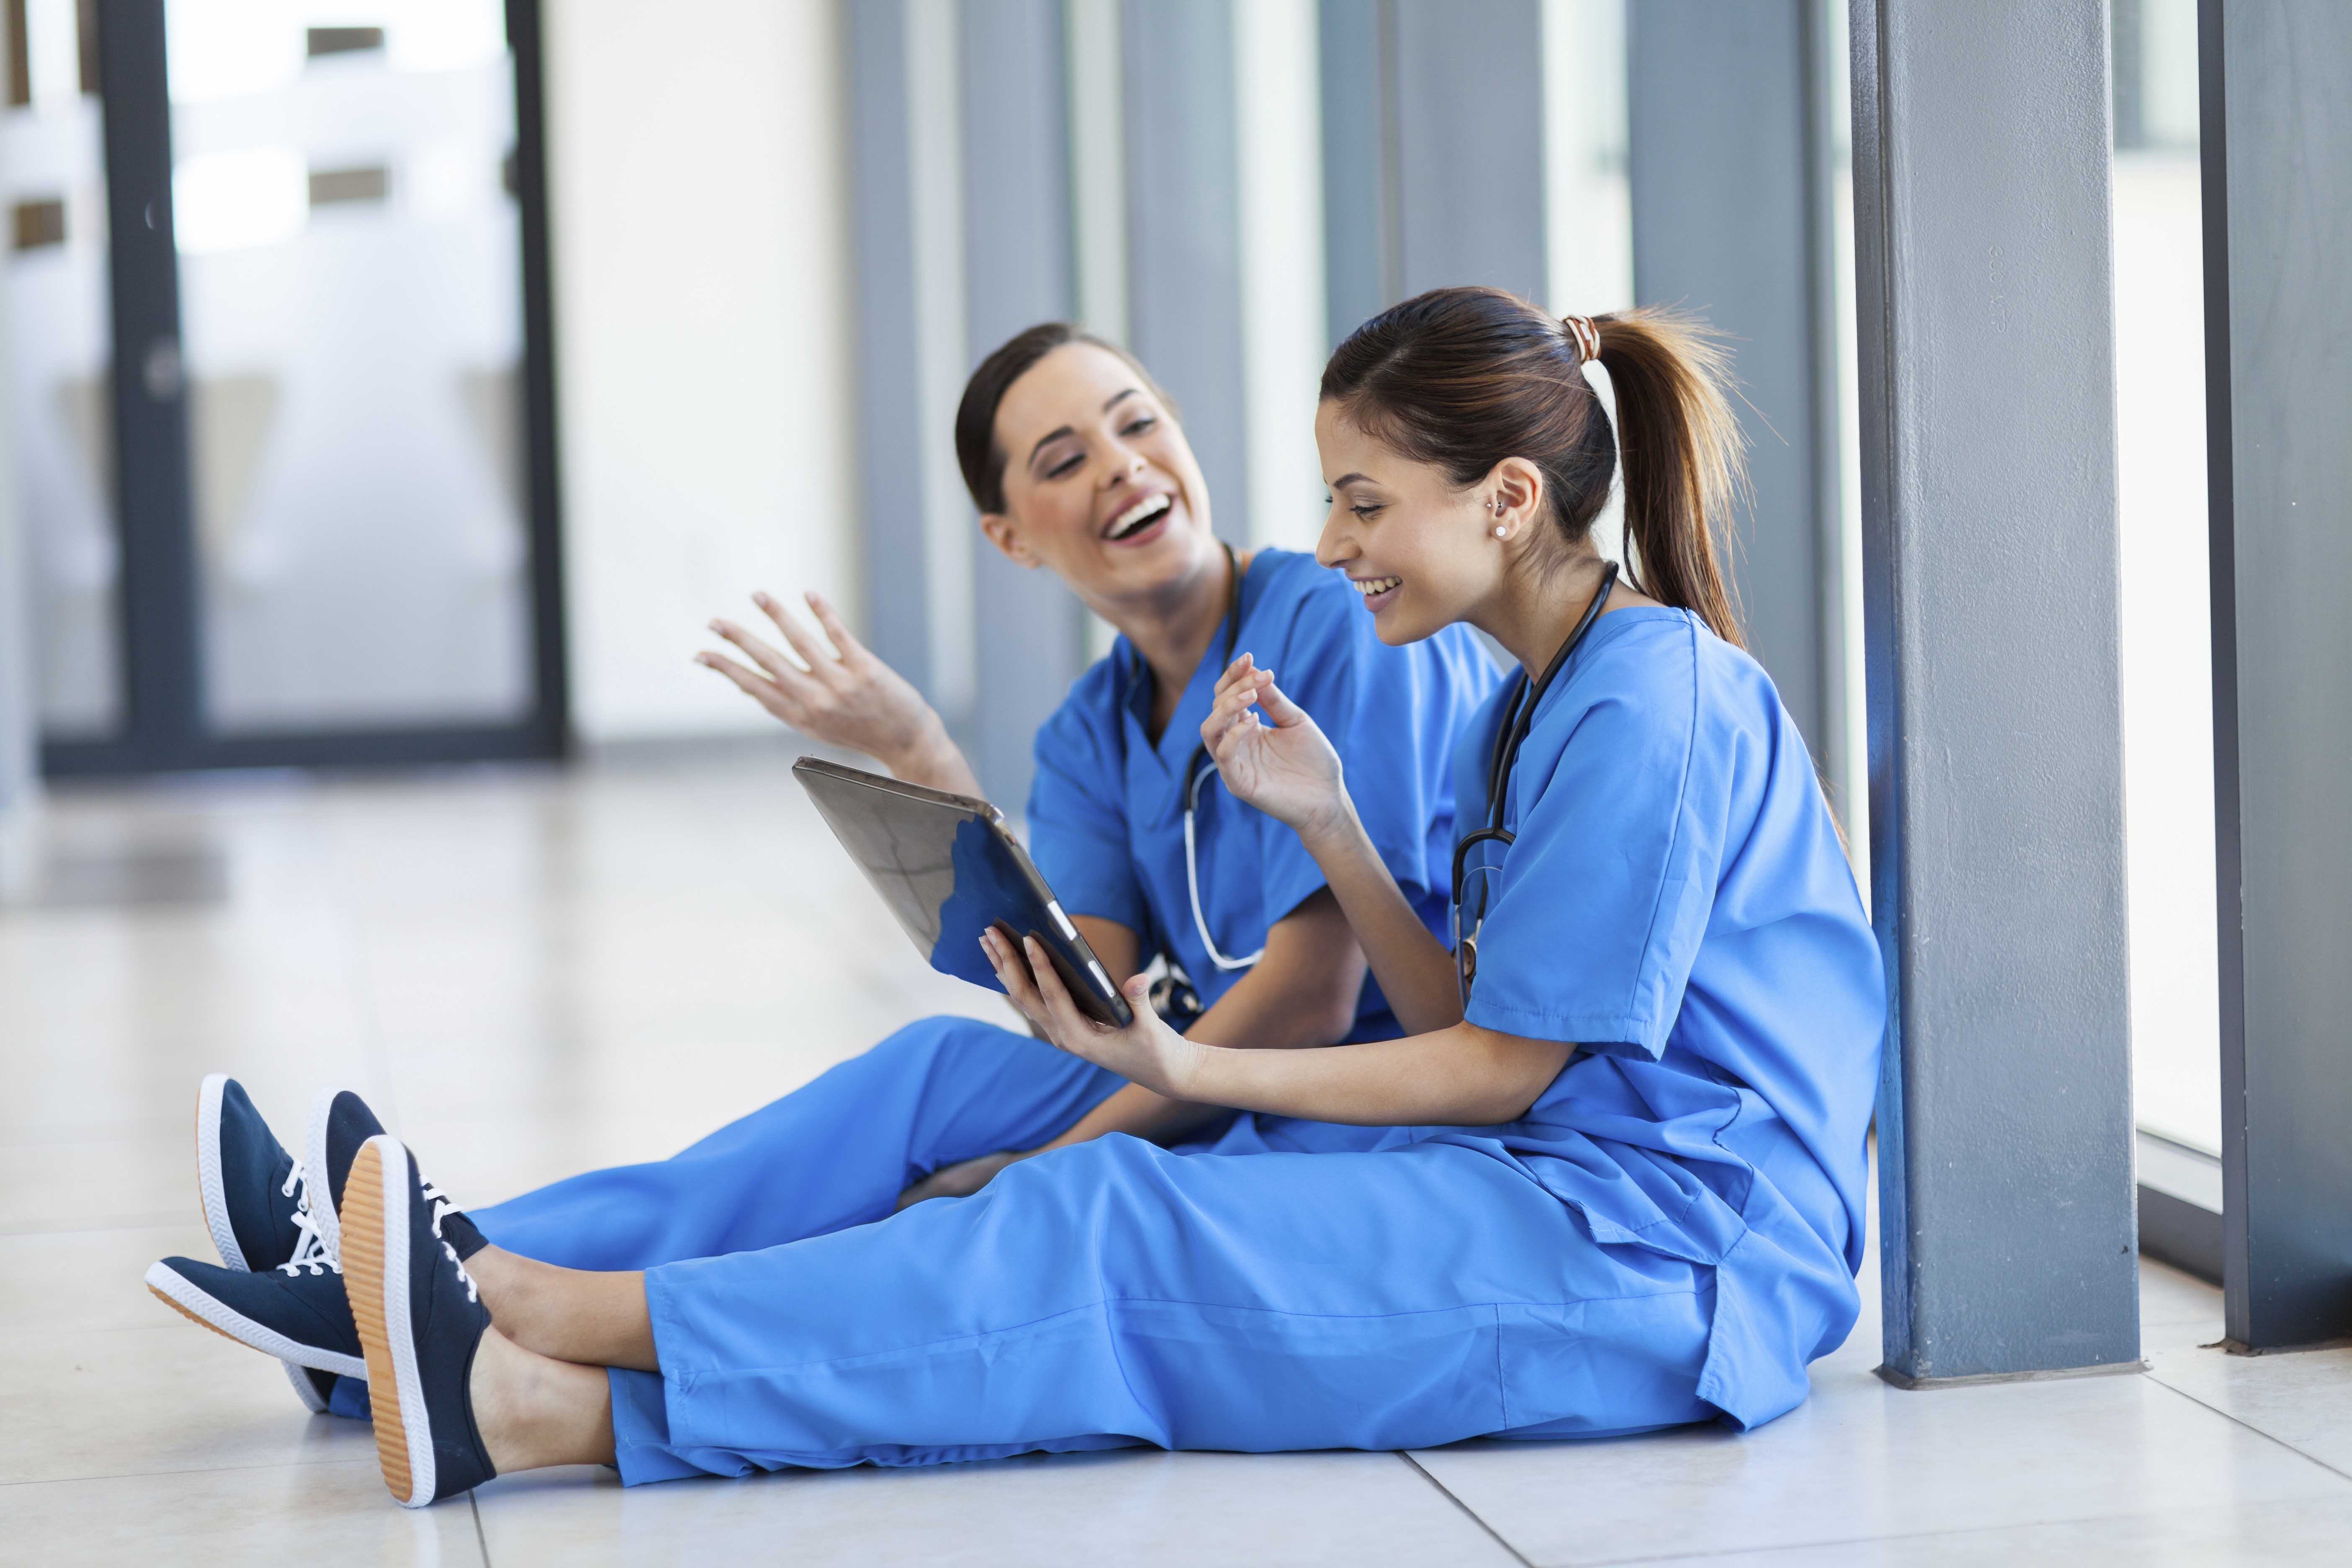 Travel Nursing Image - plains medical staffing